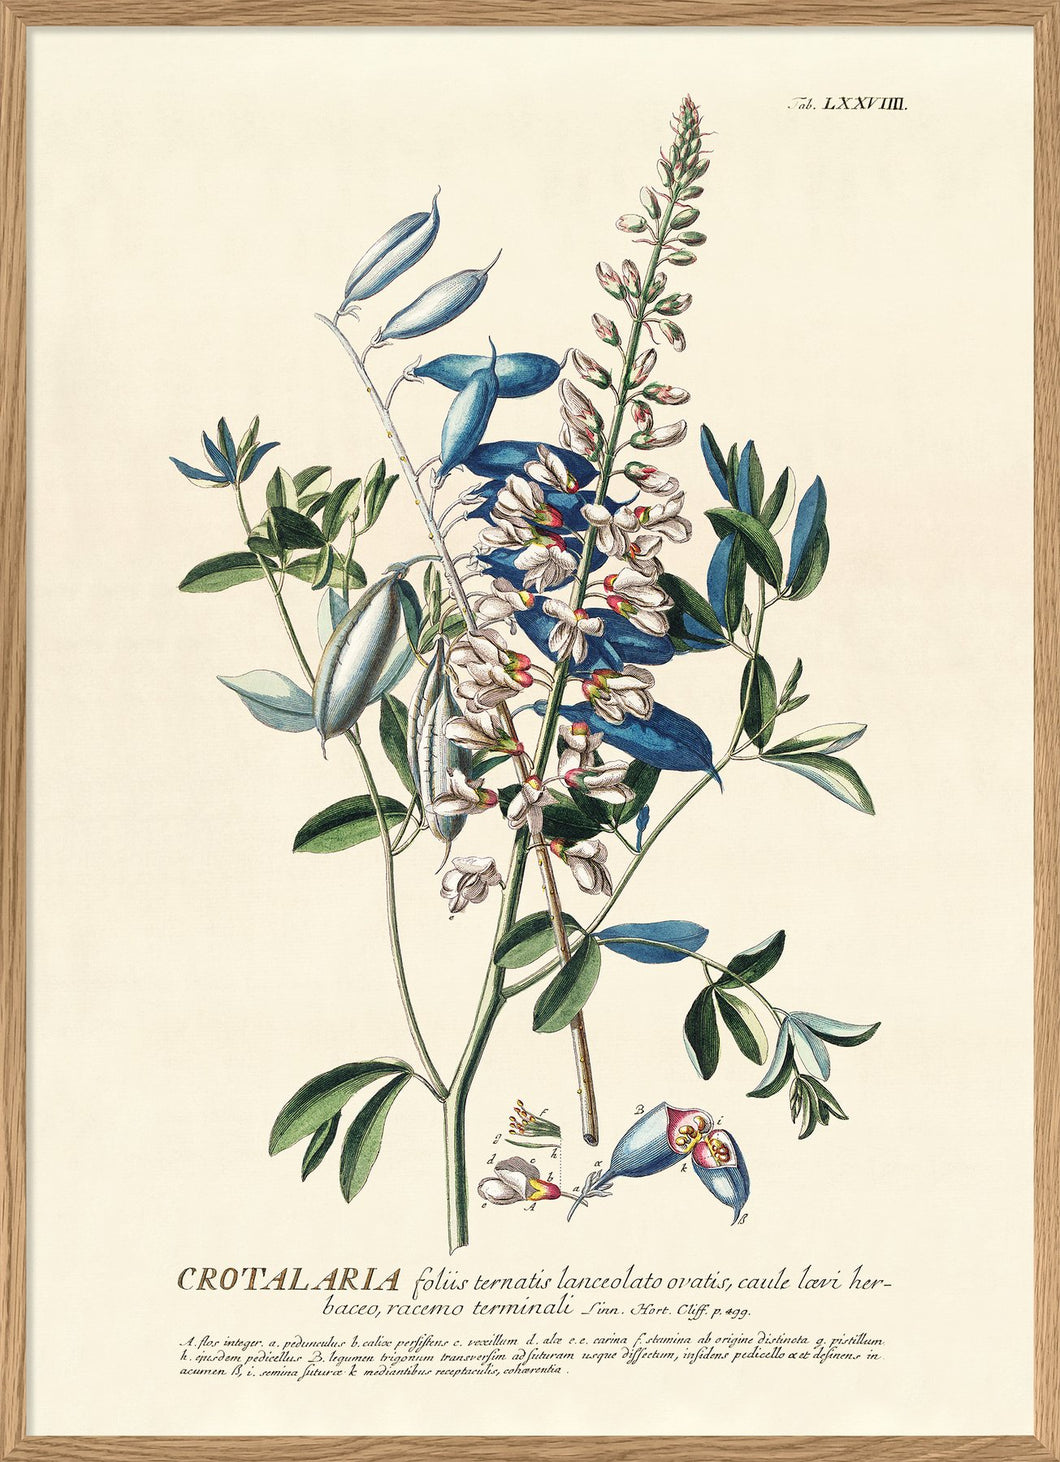 AFFICHE BLUE CROTALARIA BRANCH THE DYBDAHL